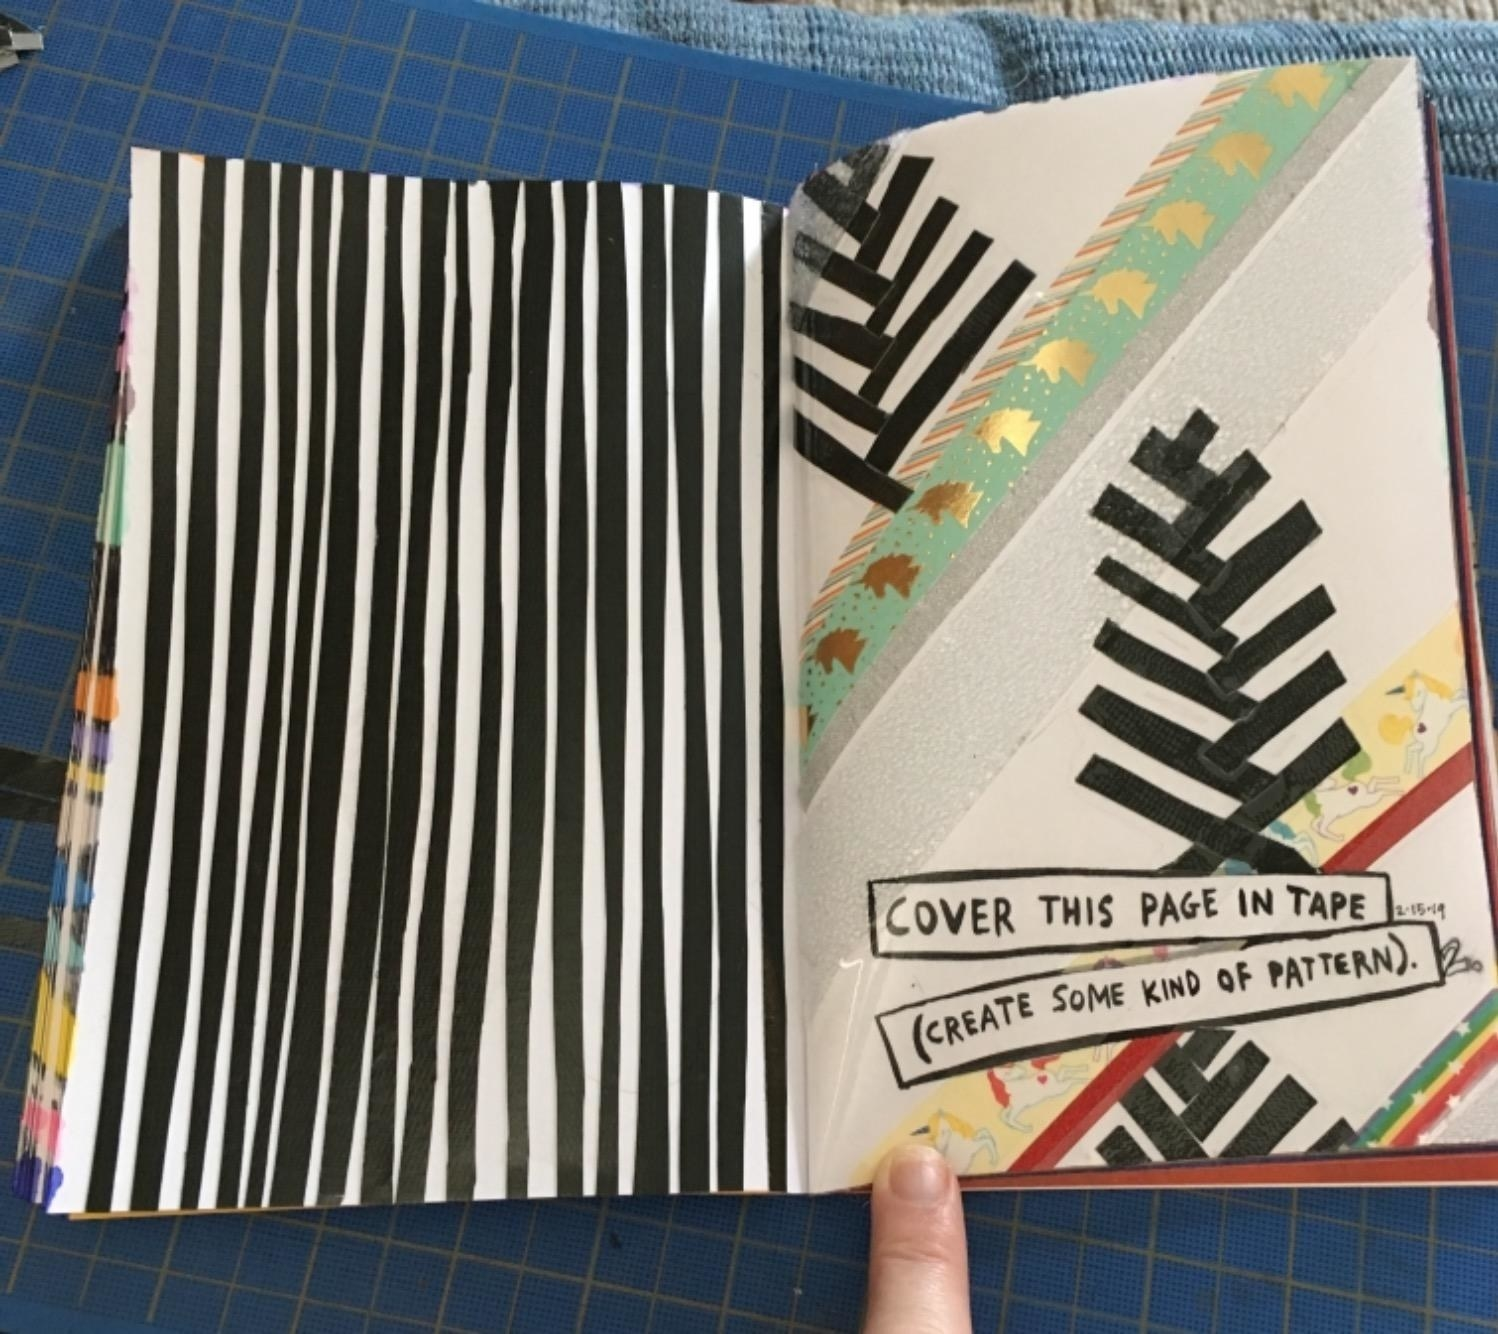 """Reviewer photo of a page of their journal with the prompt, """"cover this page in tape (create some kind of pattern)"""""""